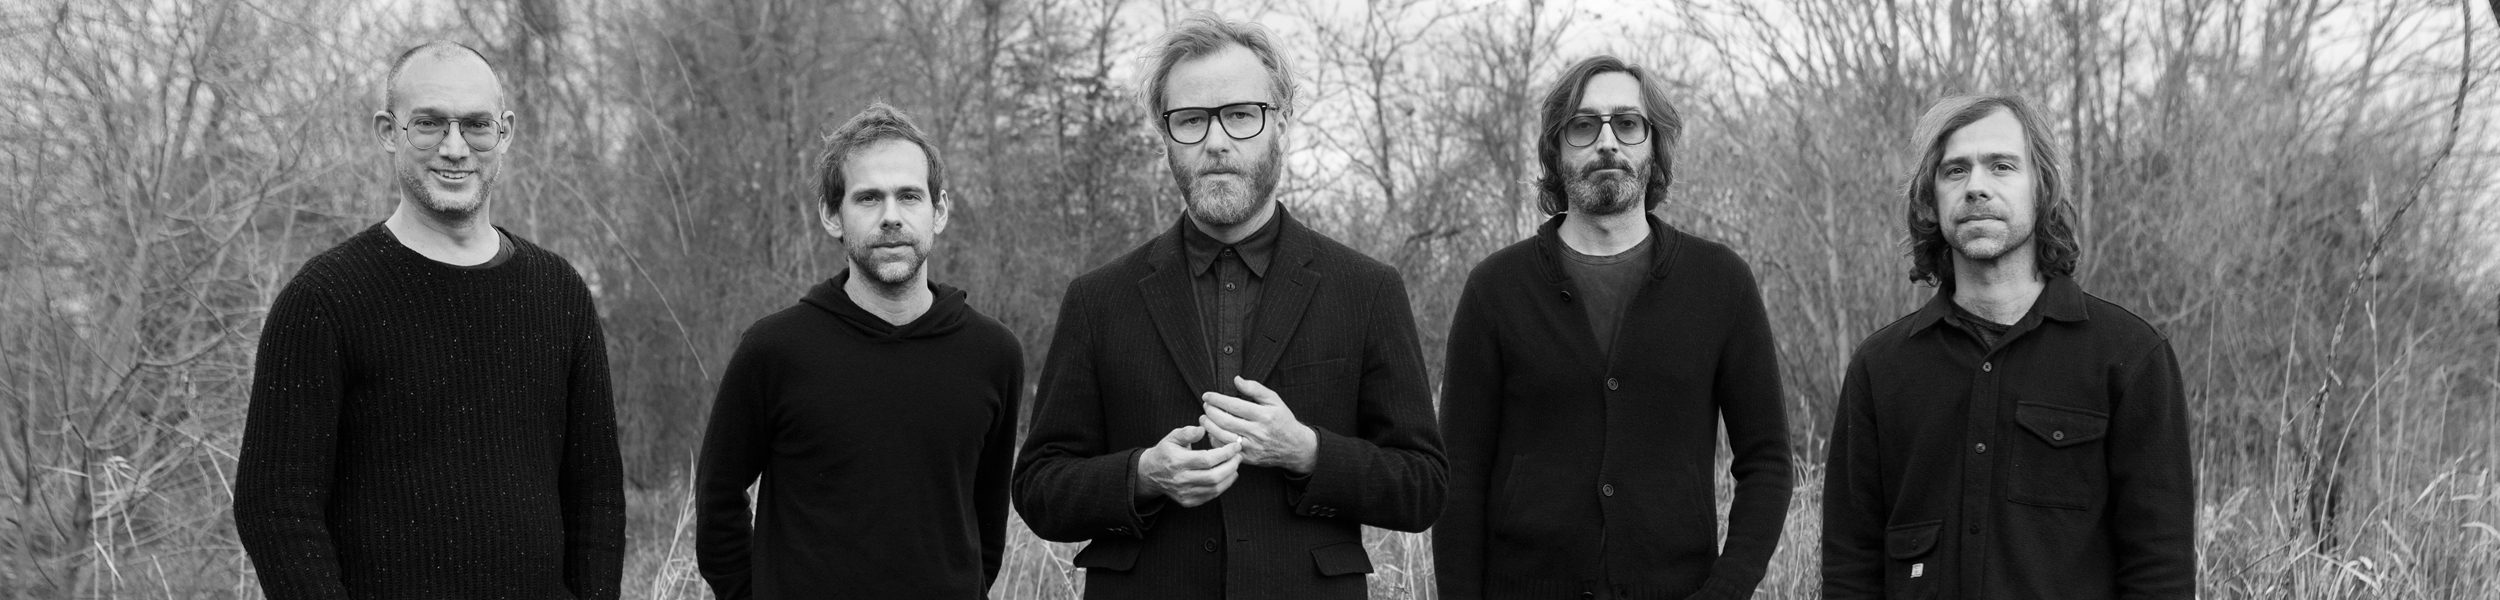 The National - Paris Show, Live-Streamed Via Pitchfork